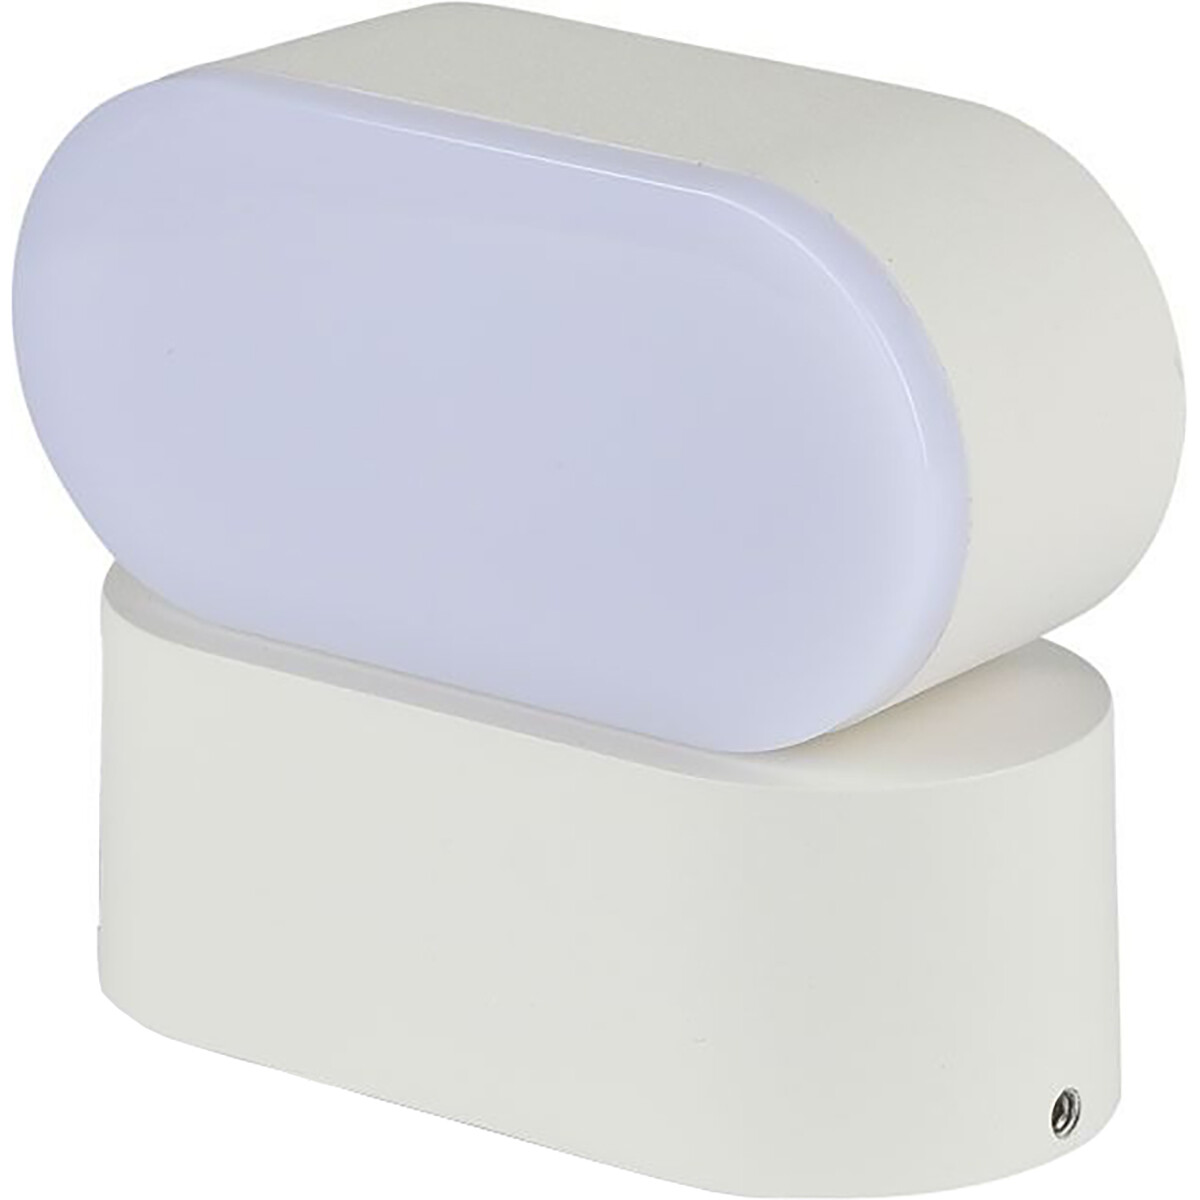 LED Tuinverlichting - Buitenlamp - Viron Trabon - Wand - 6W - Warm Wit 3000K - Ovaal - Mat Wit - Alu